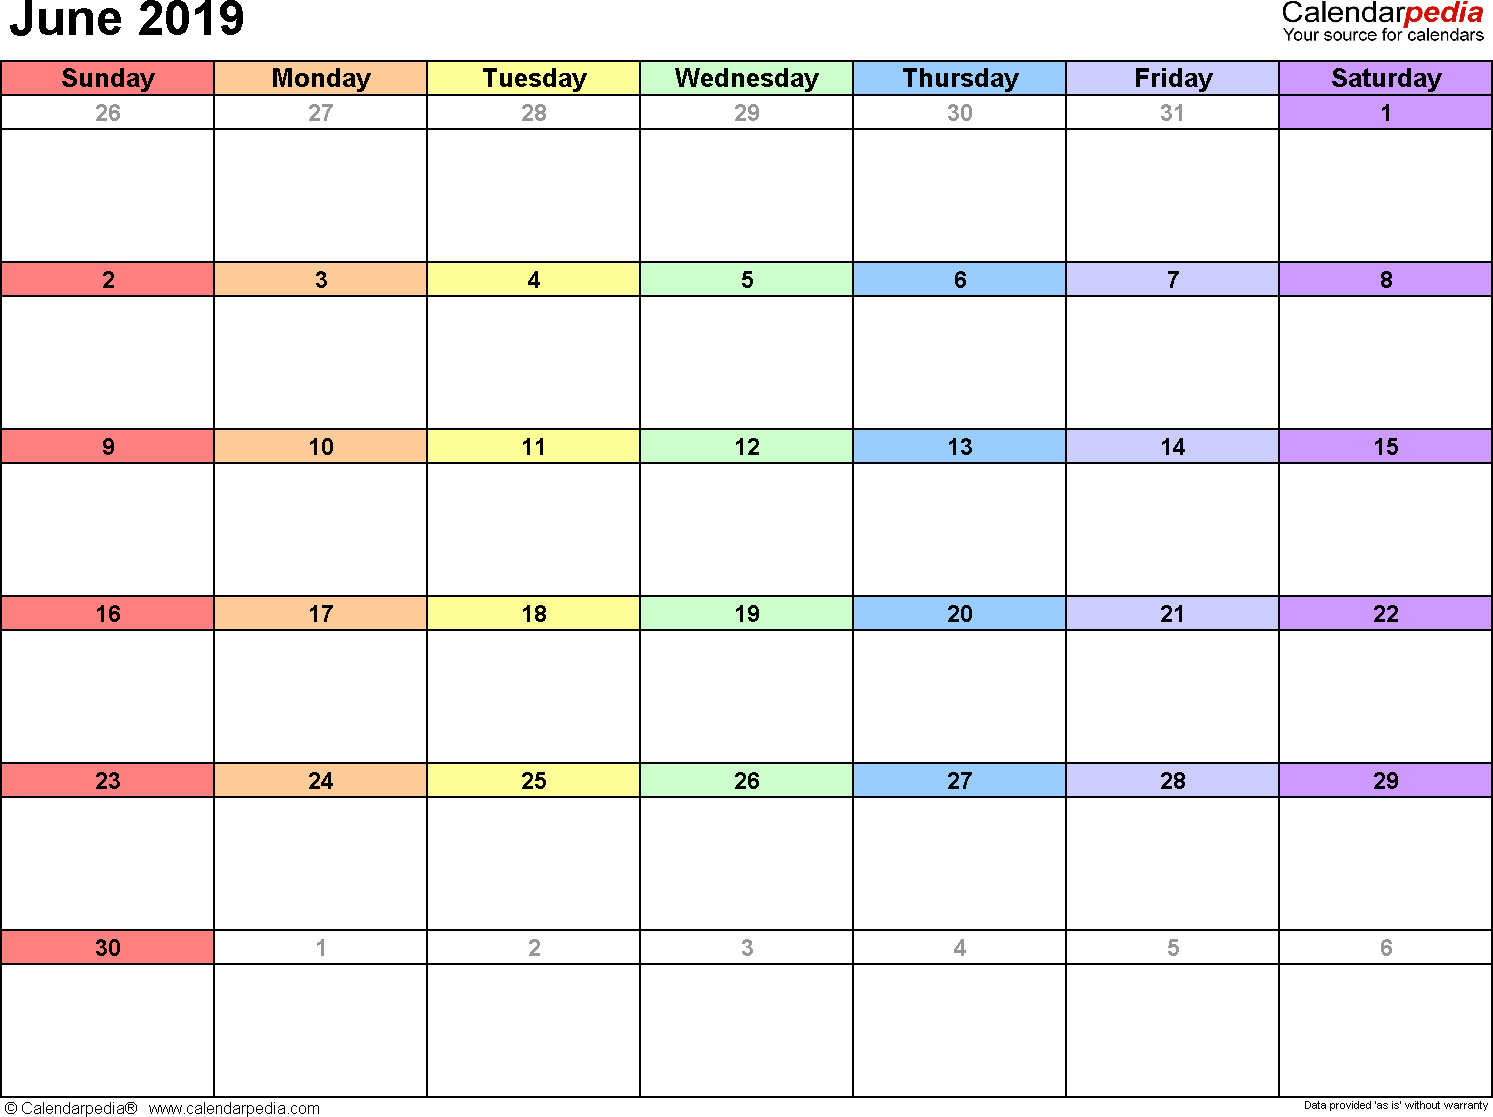 June 2019 Calendars For Word, Excel & Pdf regarding Printable Blank Calendar June